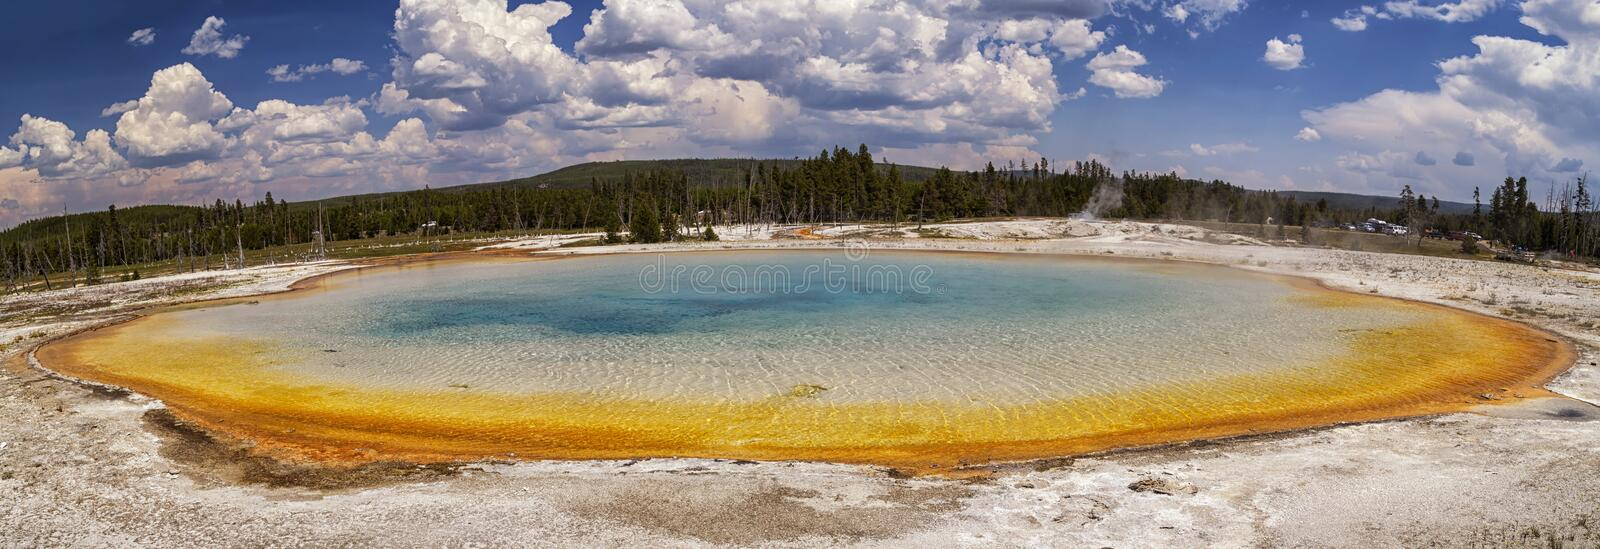 Beau panorama de lac sunset au bassin noir de sable en parc national de Yellowstone image libre de droits